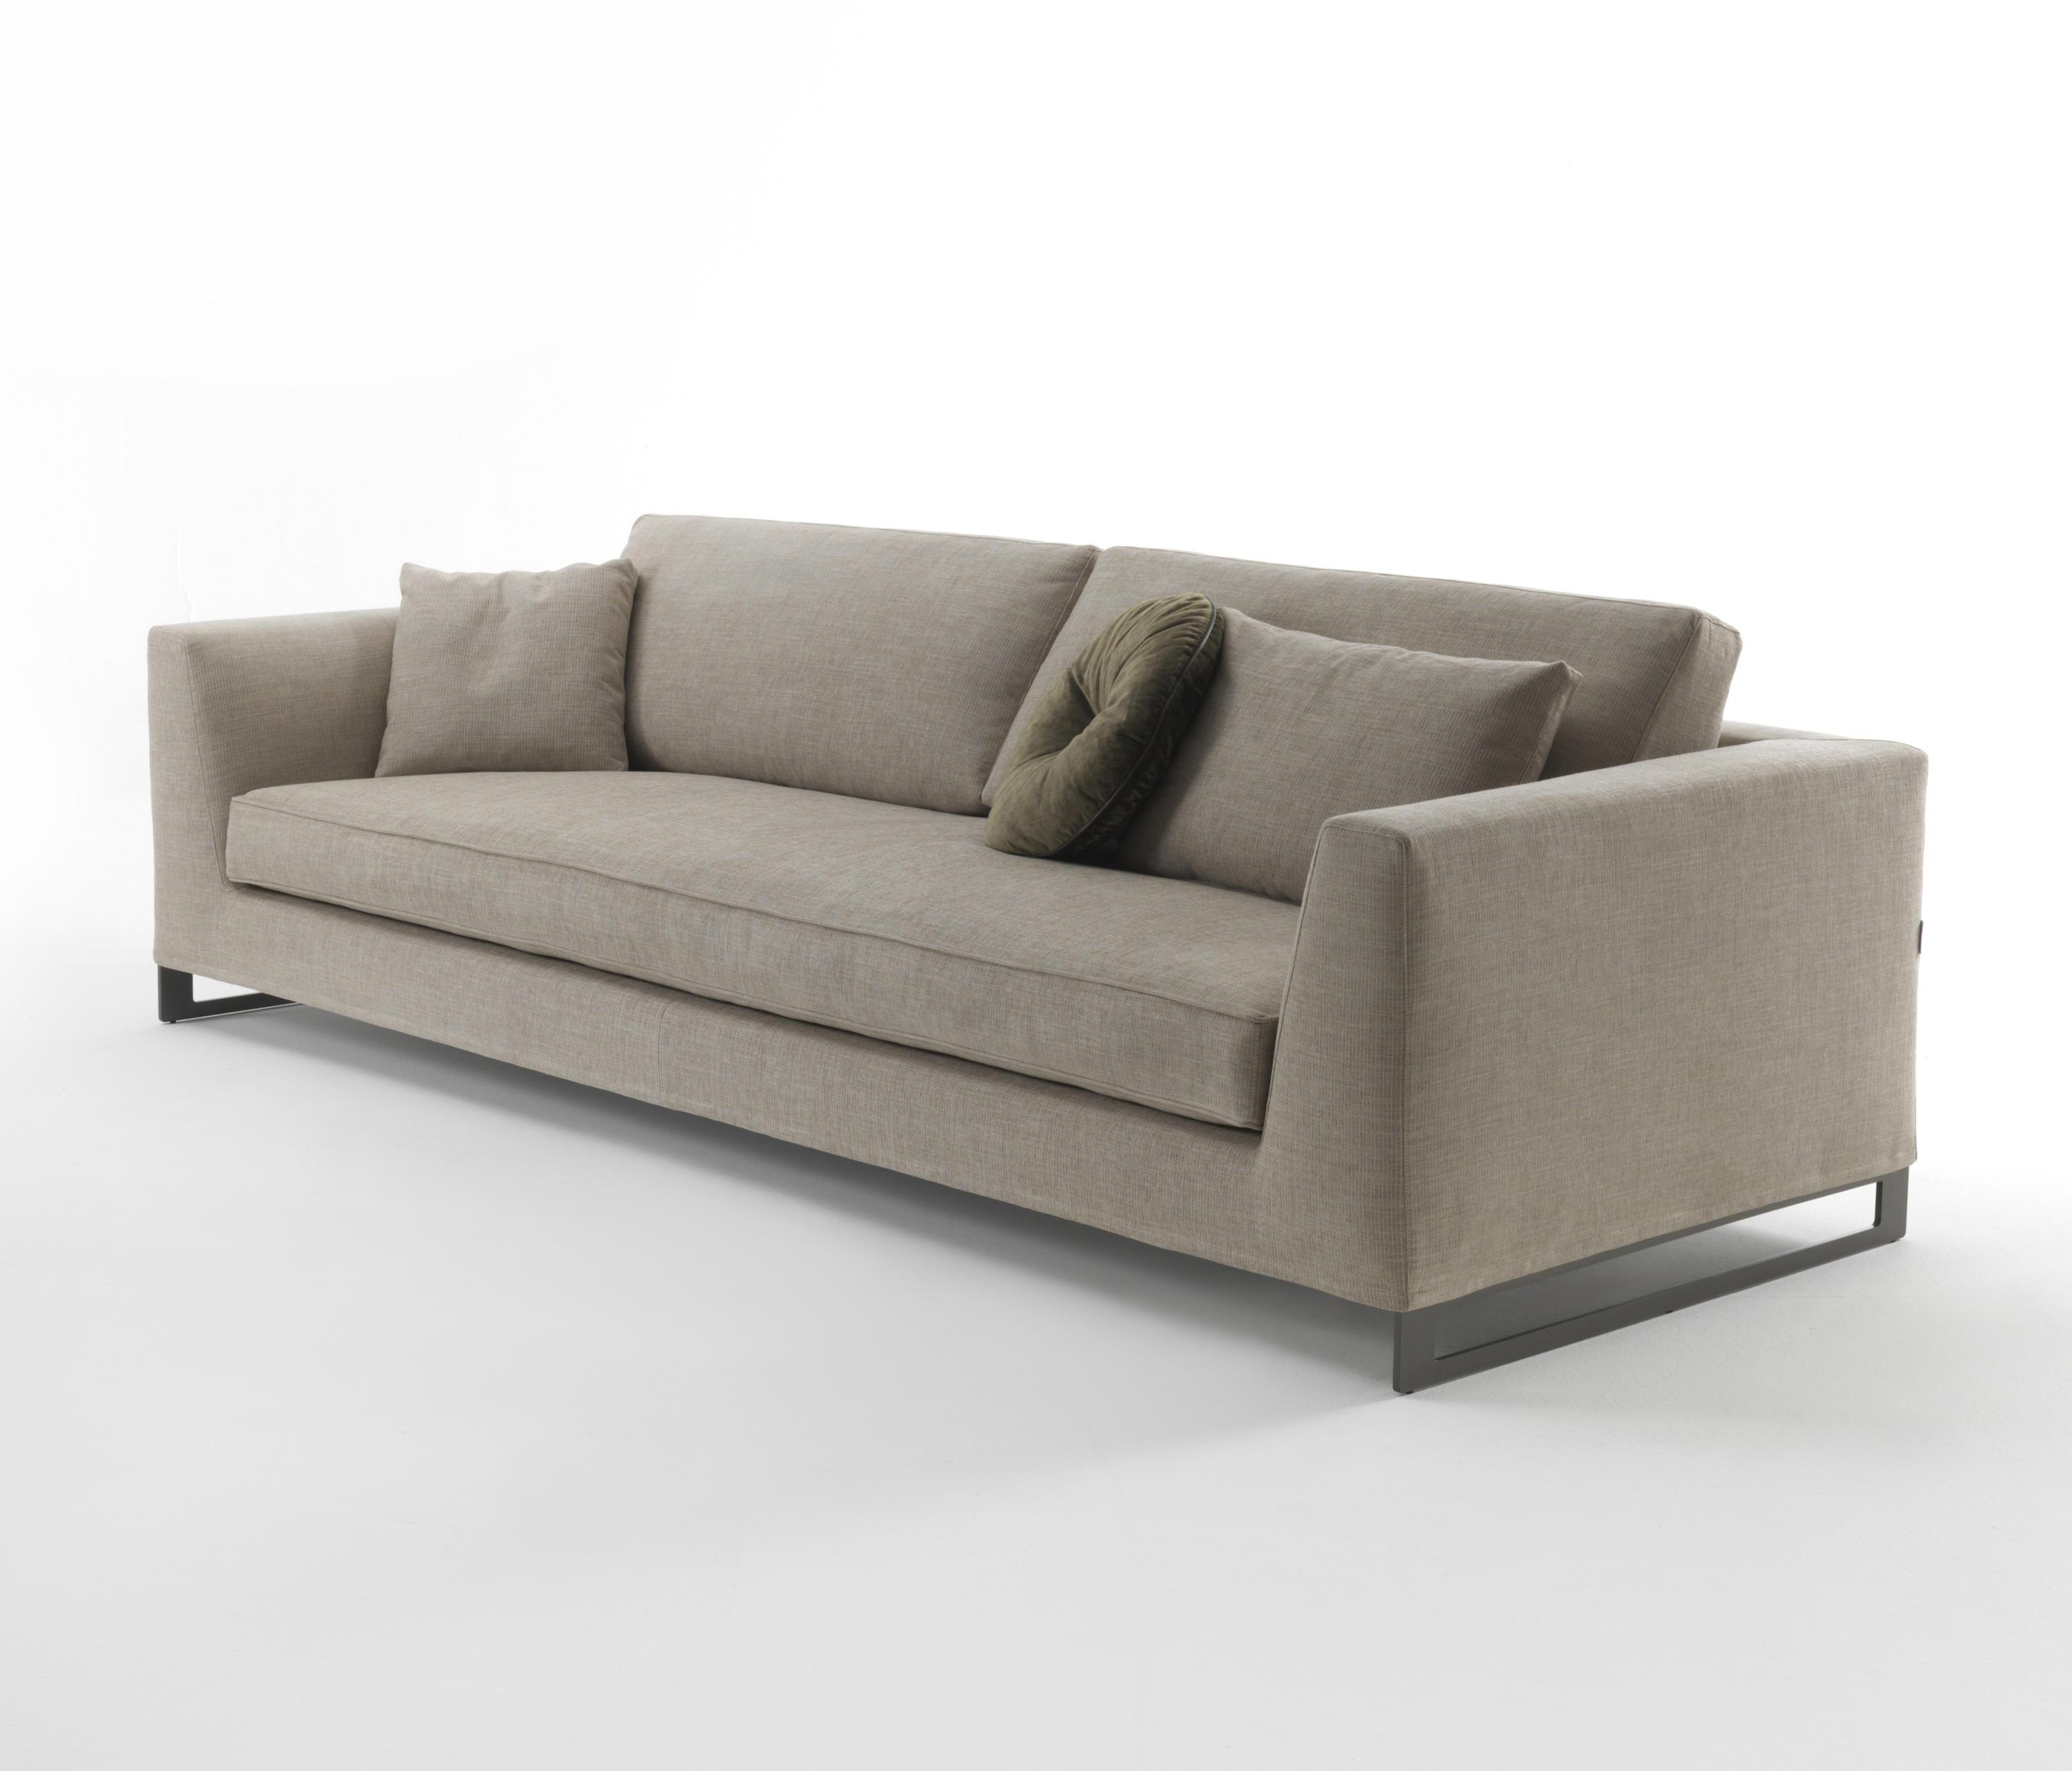 Free Sofas Pertaining To Davis Sofas (View 10 of 20)